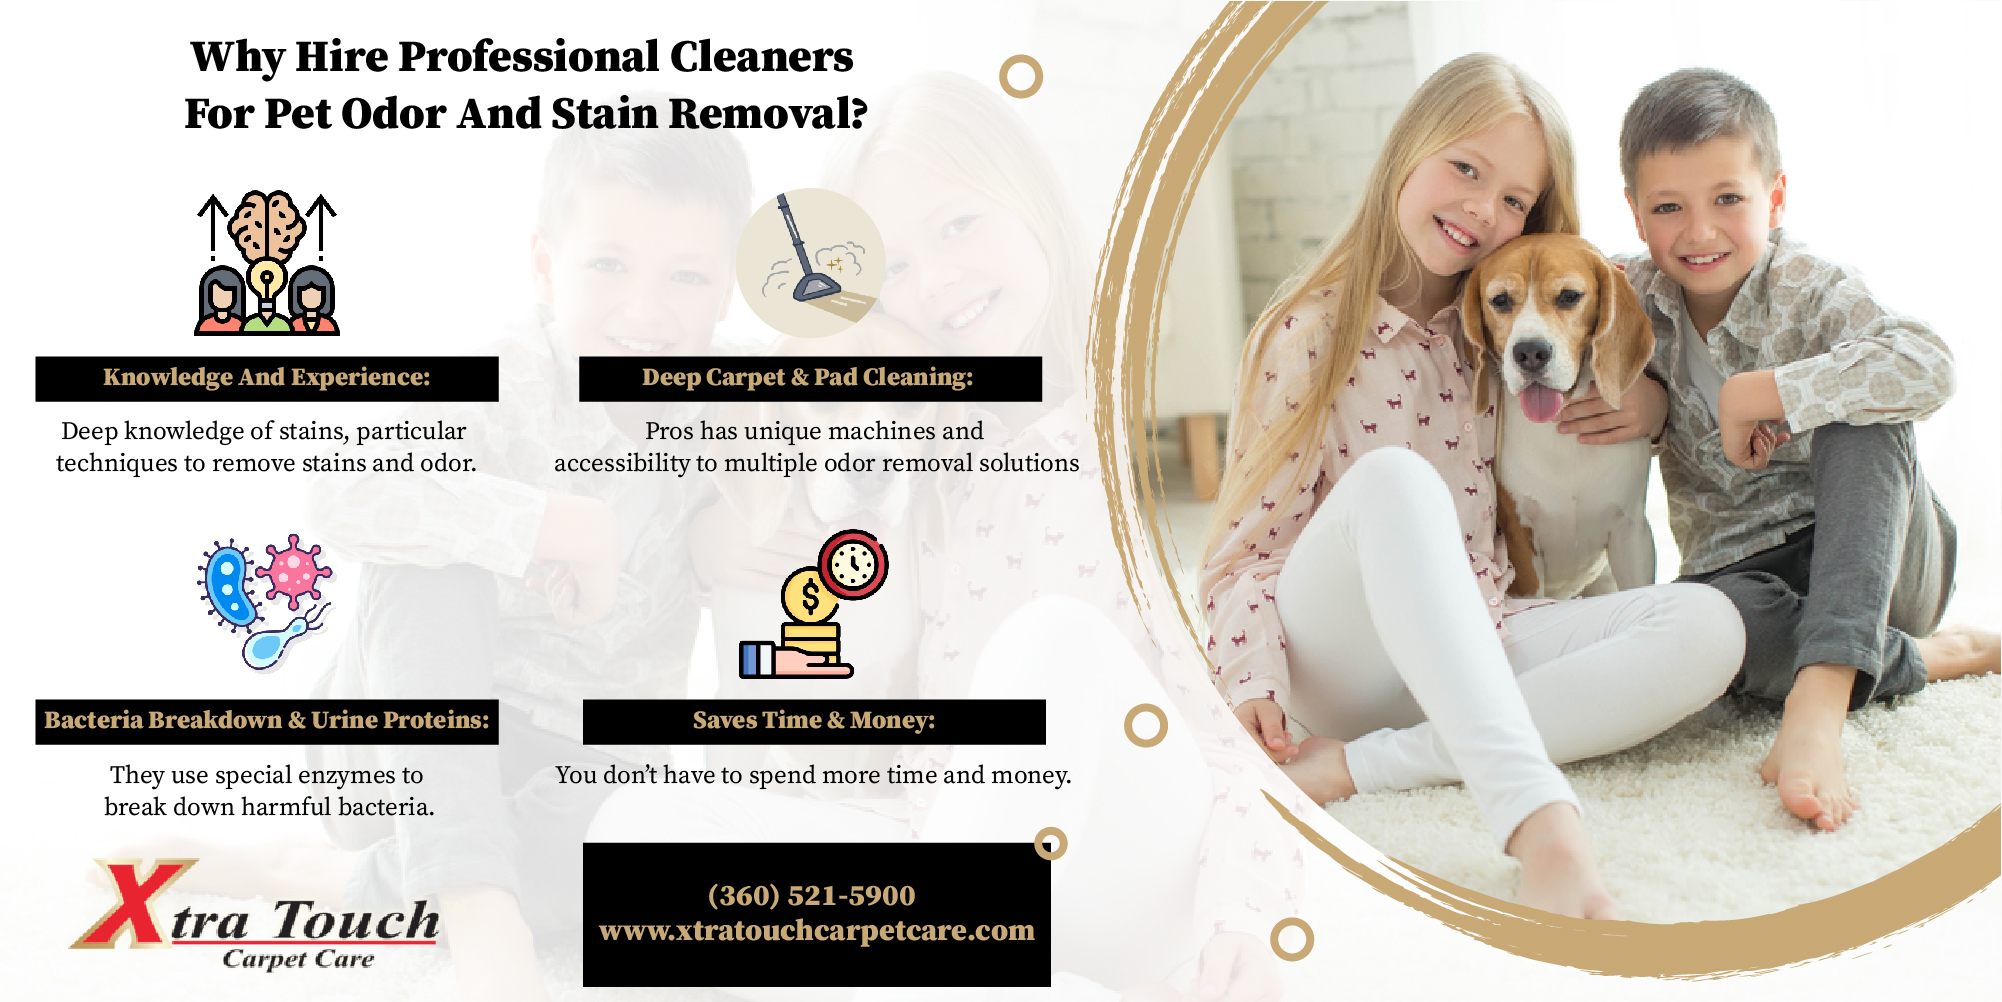 Why Hire Professional Cleaners For Pet Odor And Stain Removal? [Infographic]